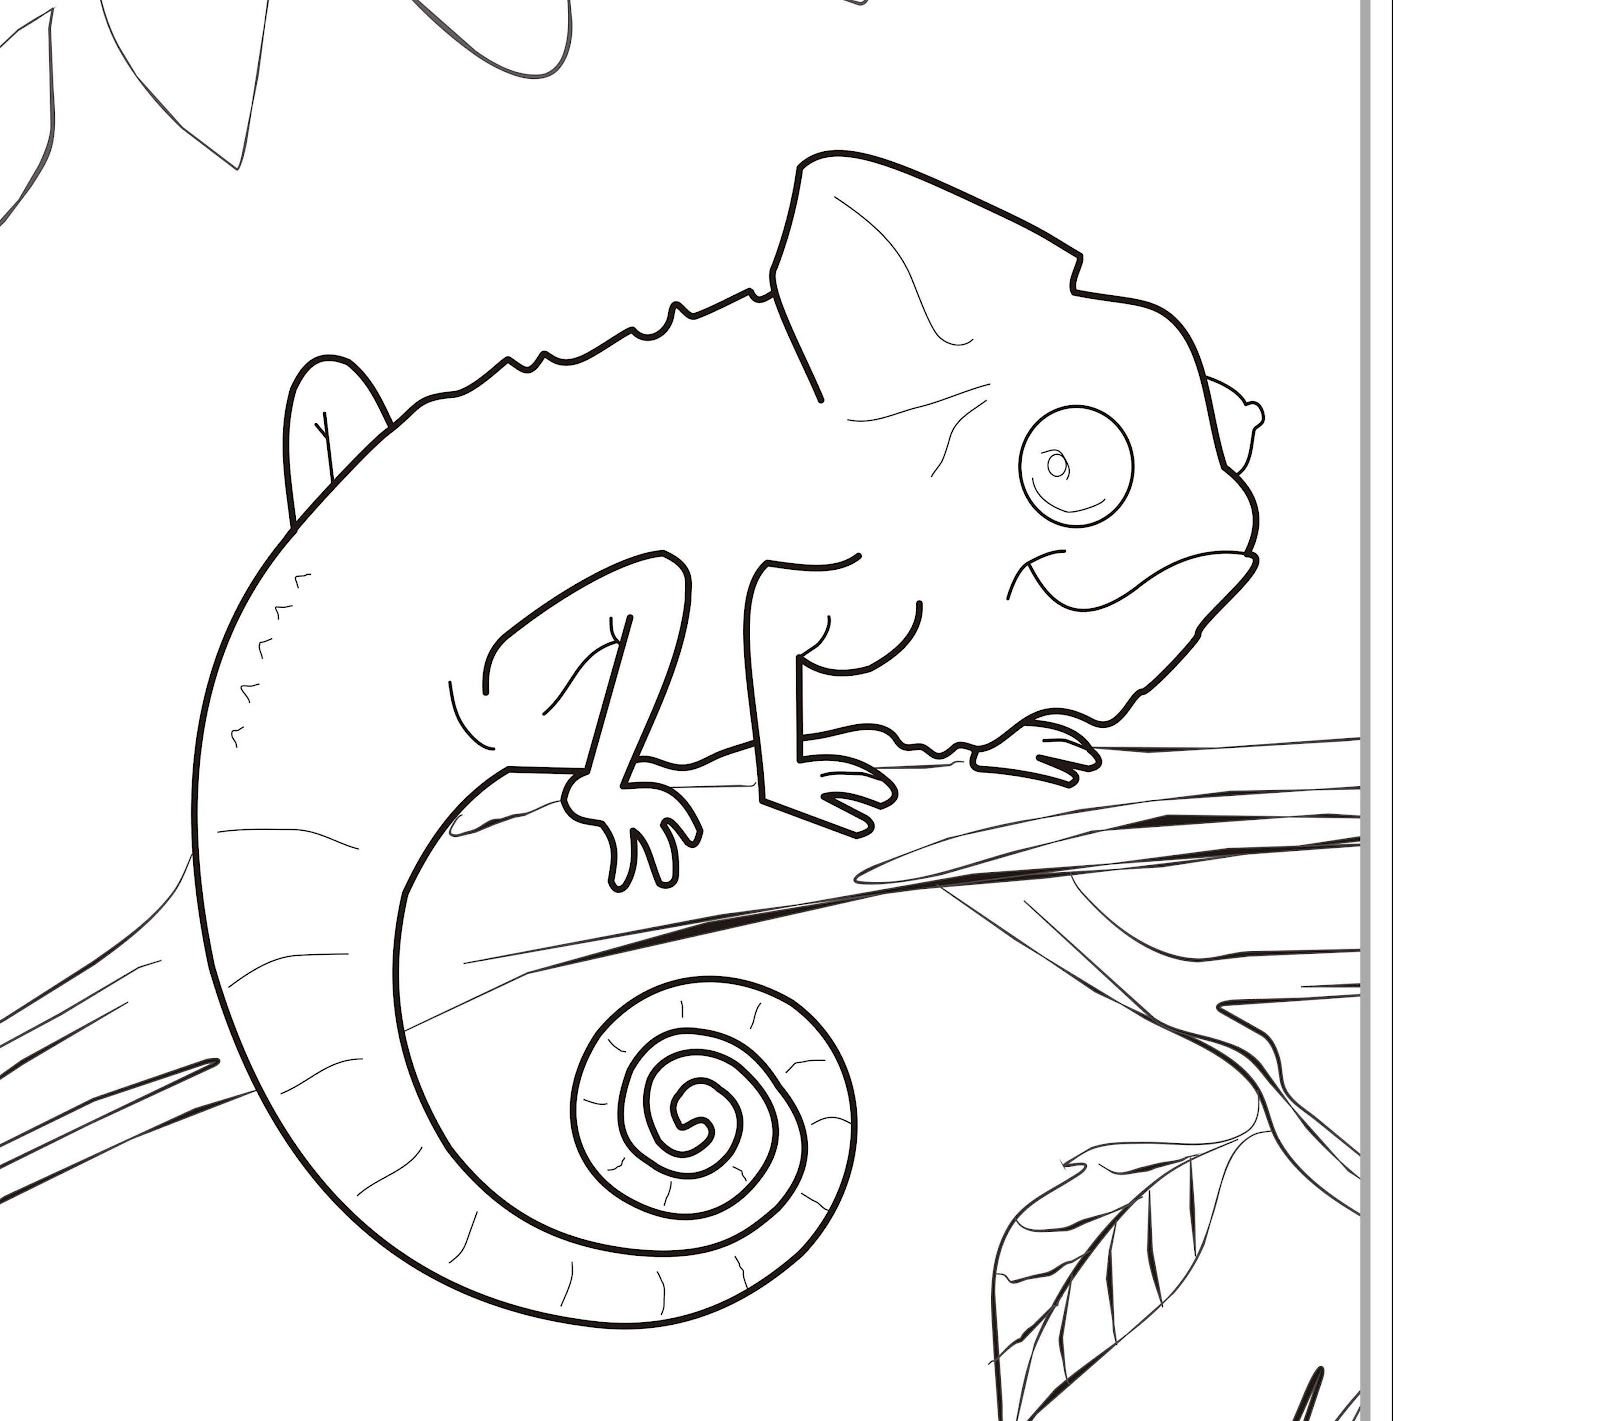 Free coloring pictures zoo animals - Coloring Pages Zoo Iguanas